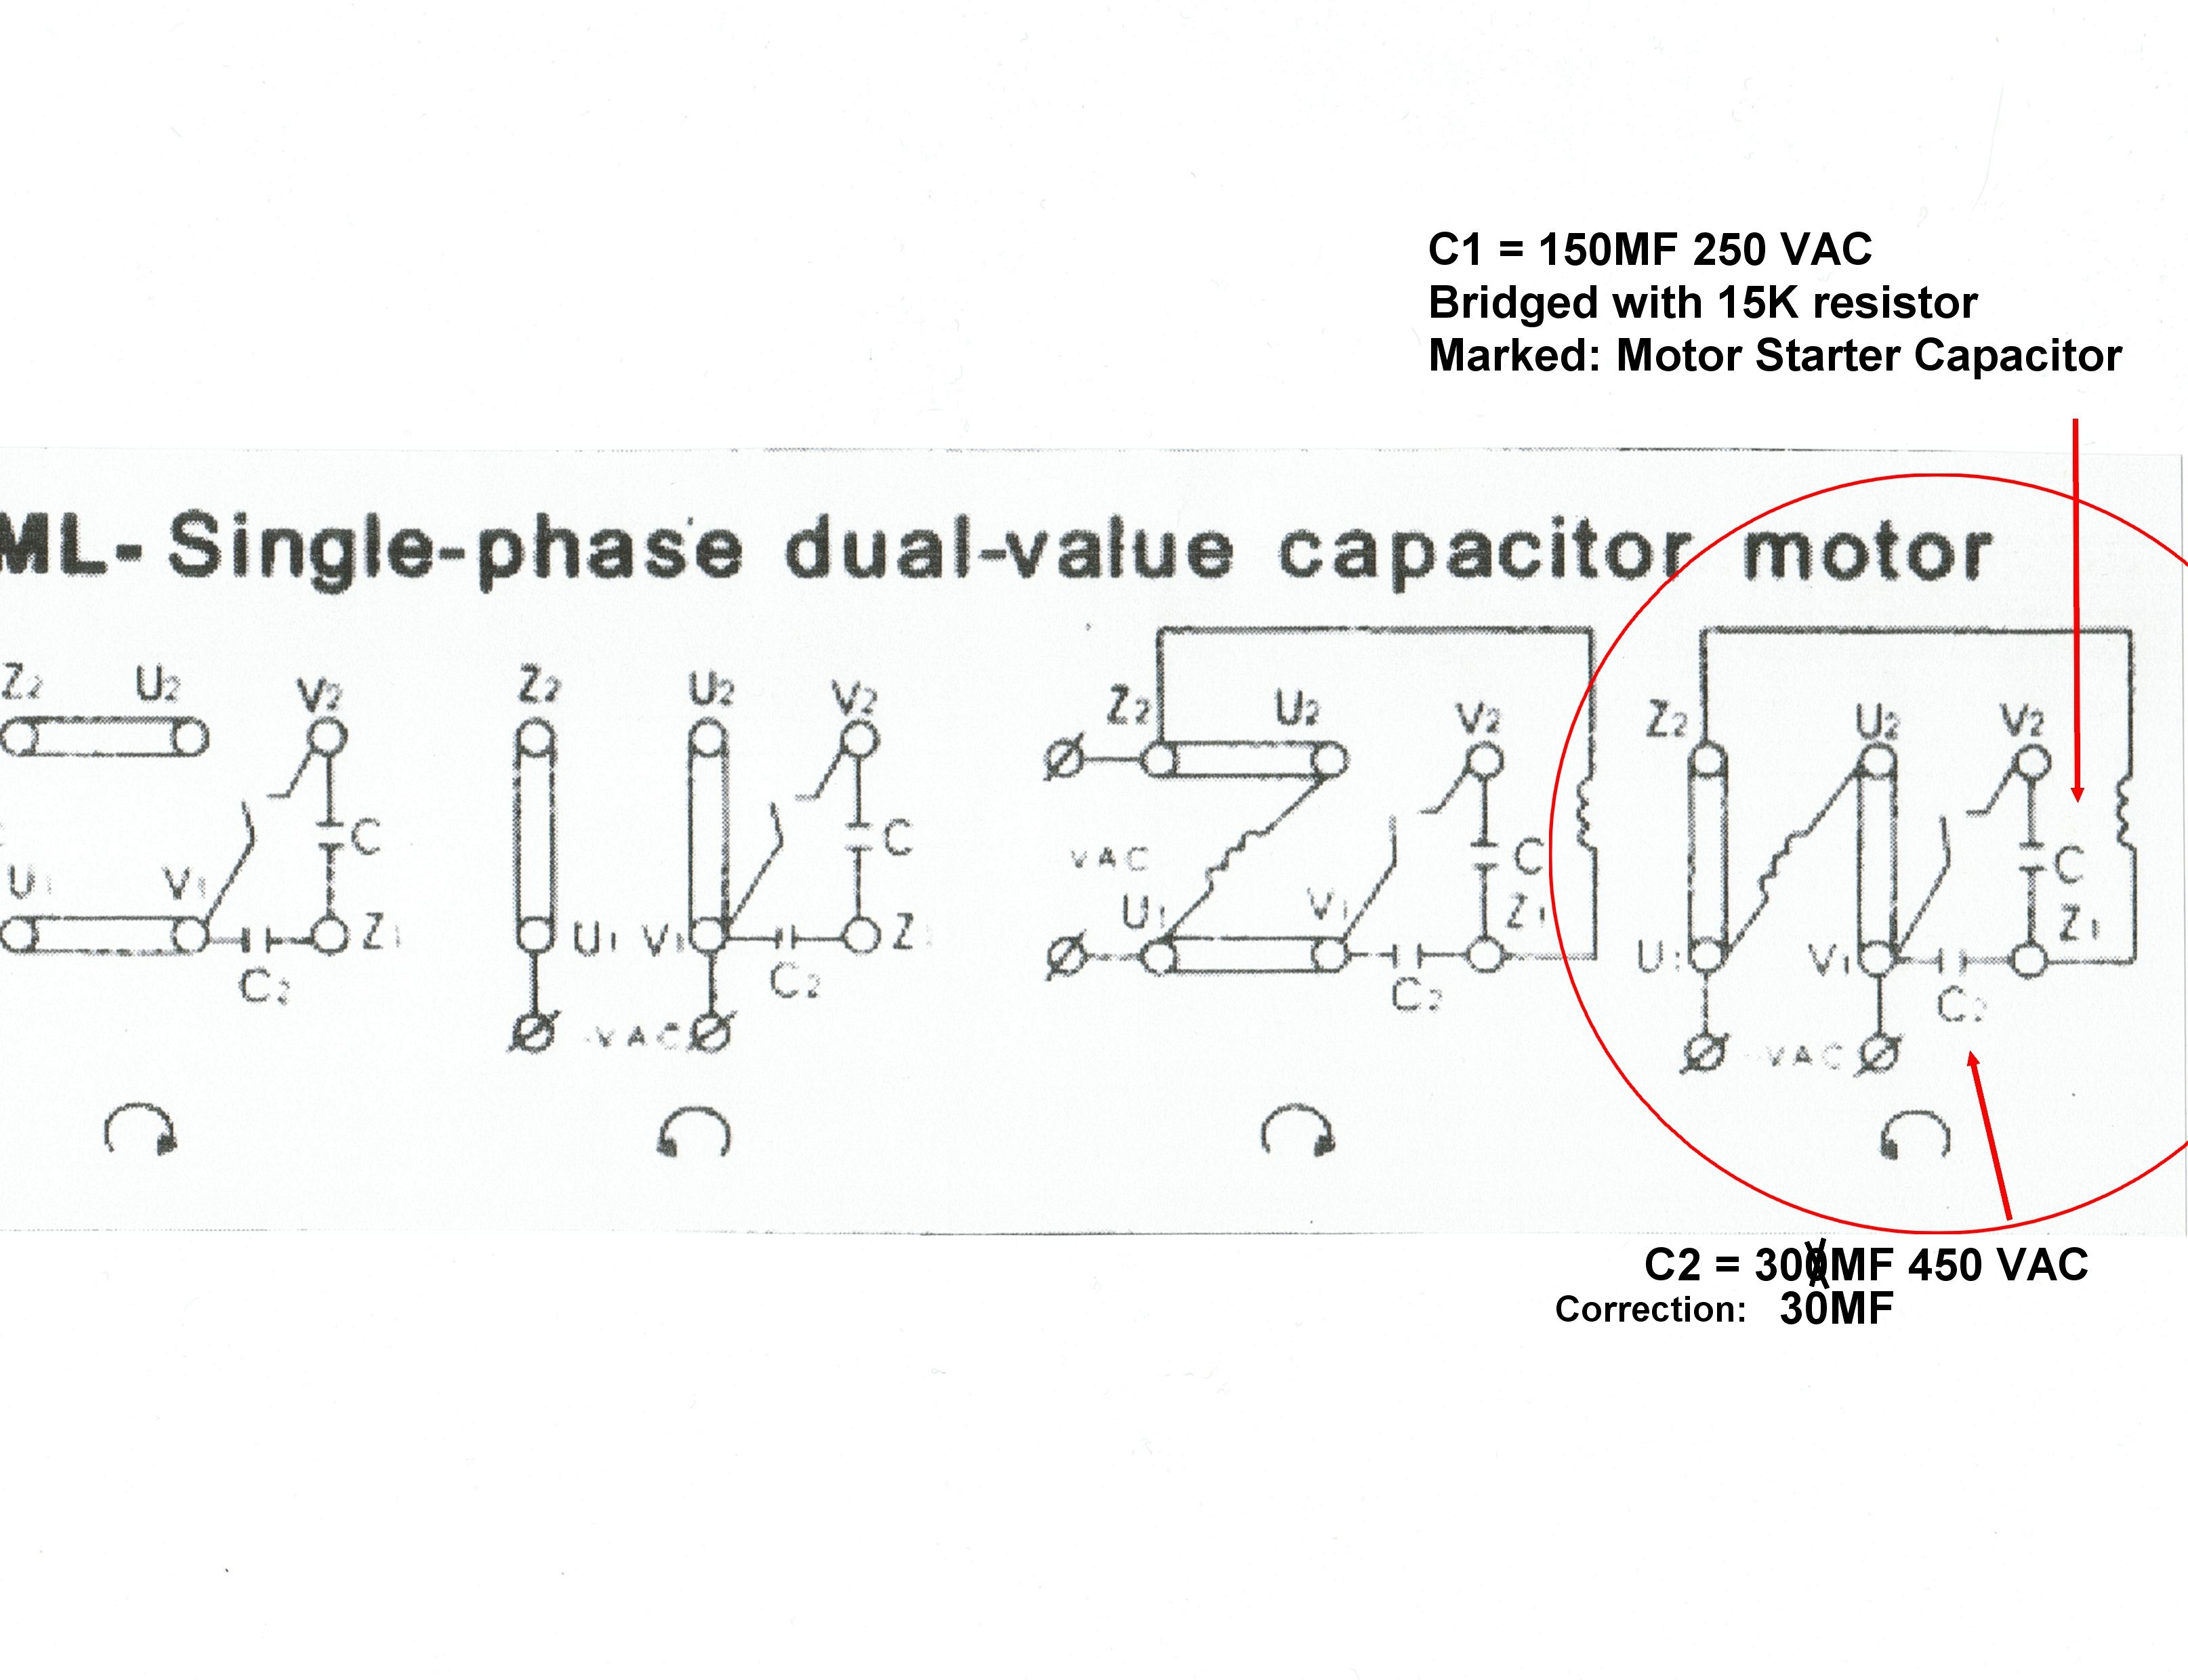 Saw_Motor03 toro z master wiring diagram roslonek net,Wiring Diagram For Toro Riding Mower